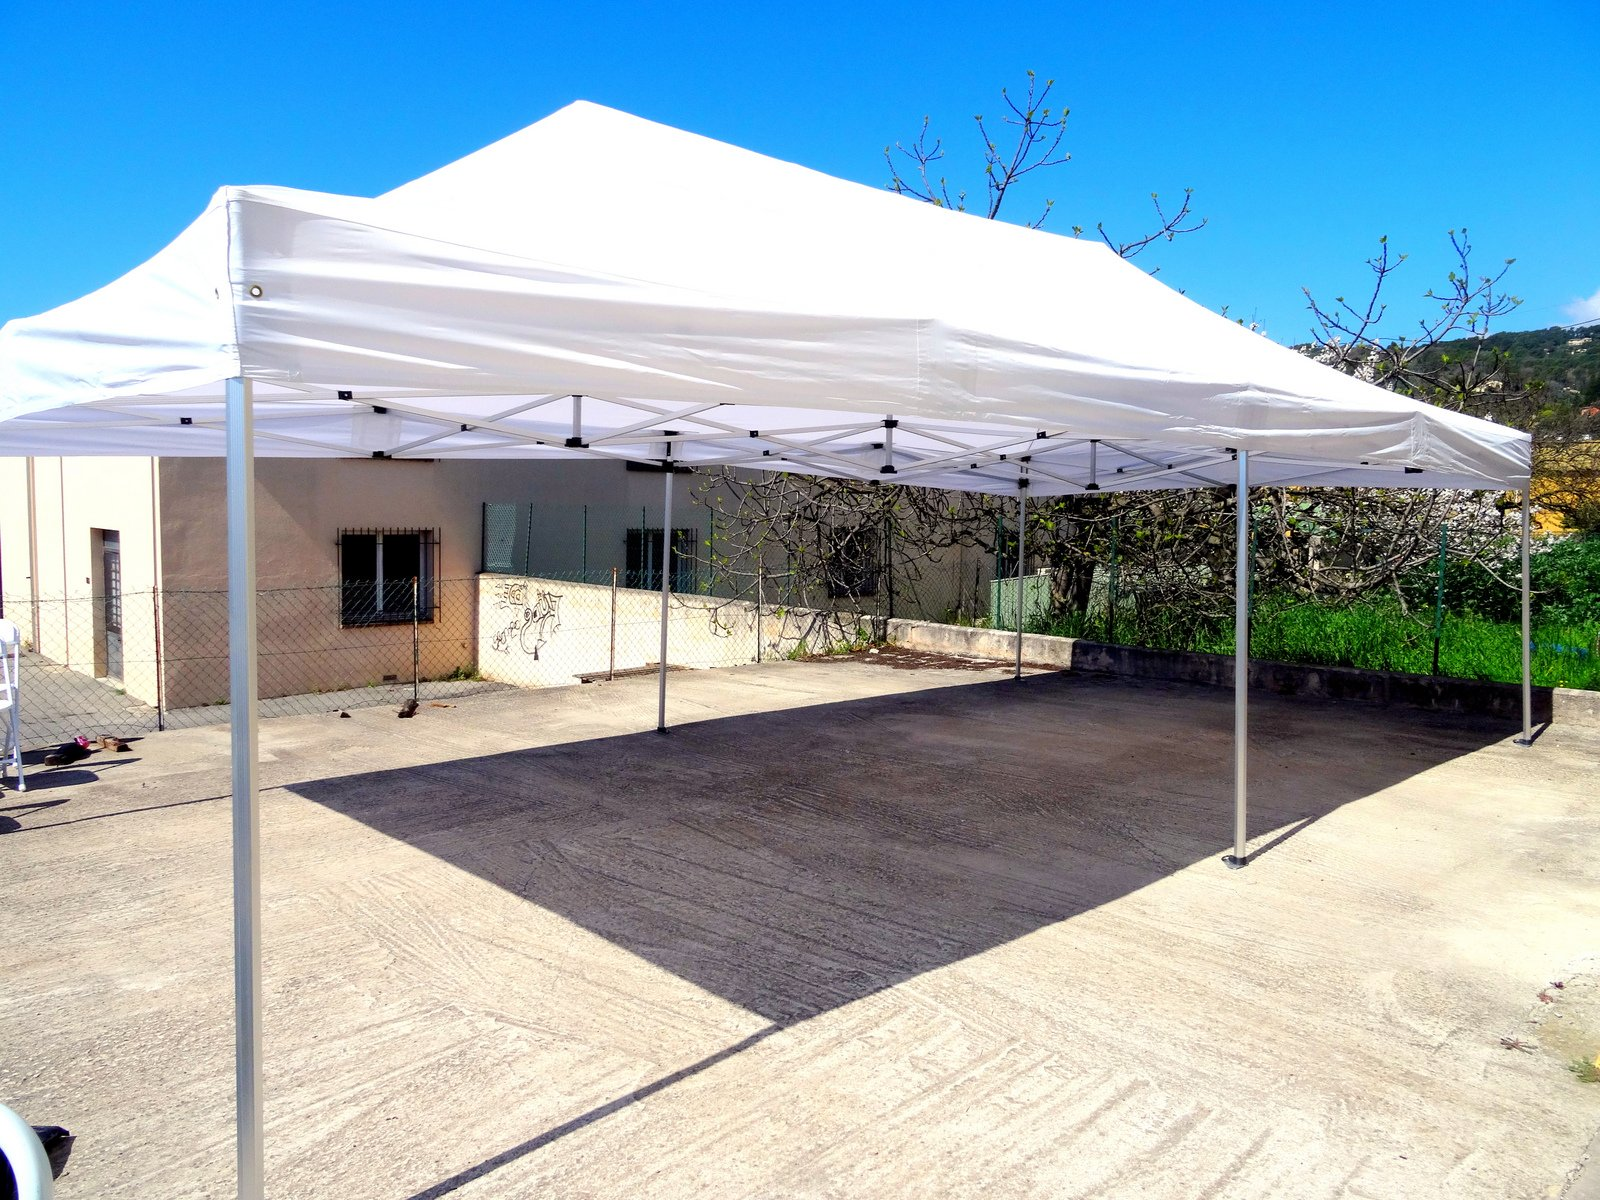 Location Tente 4x8m Pro Depliable